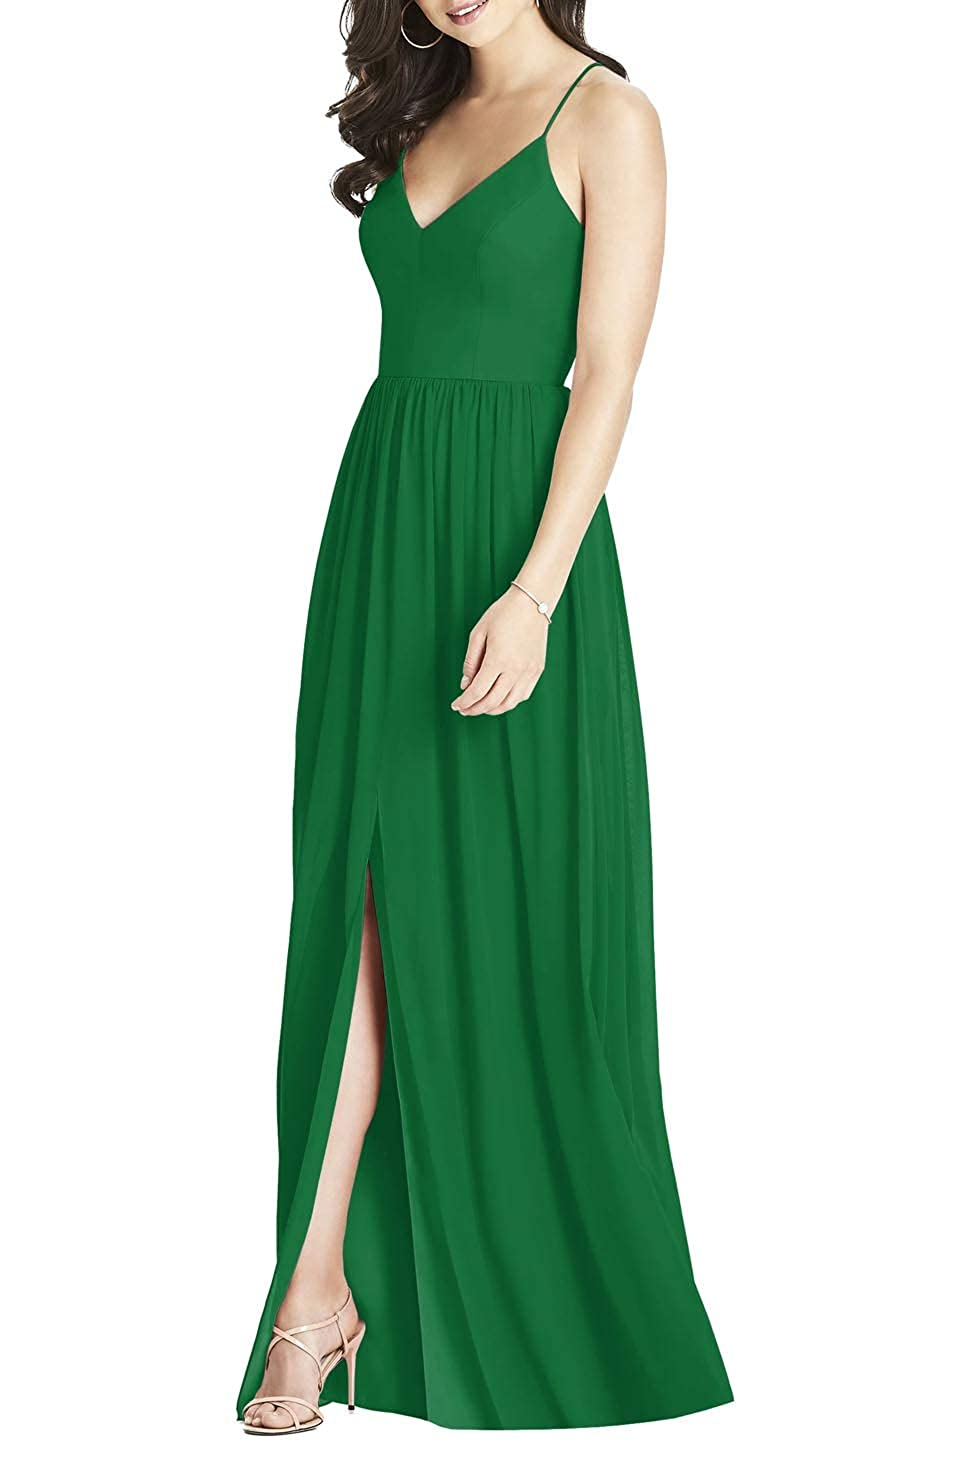 Green YUSHENGSM Women's Spaghetti Strap Prom Dresses Long Formal Evening Bridesmaid Party Gown